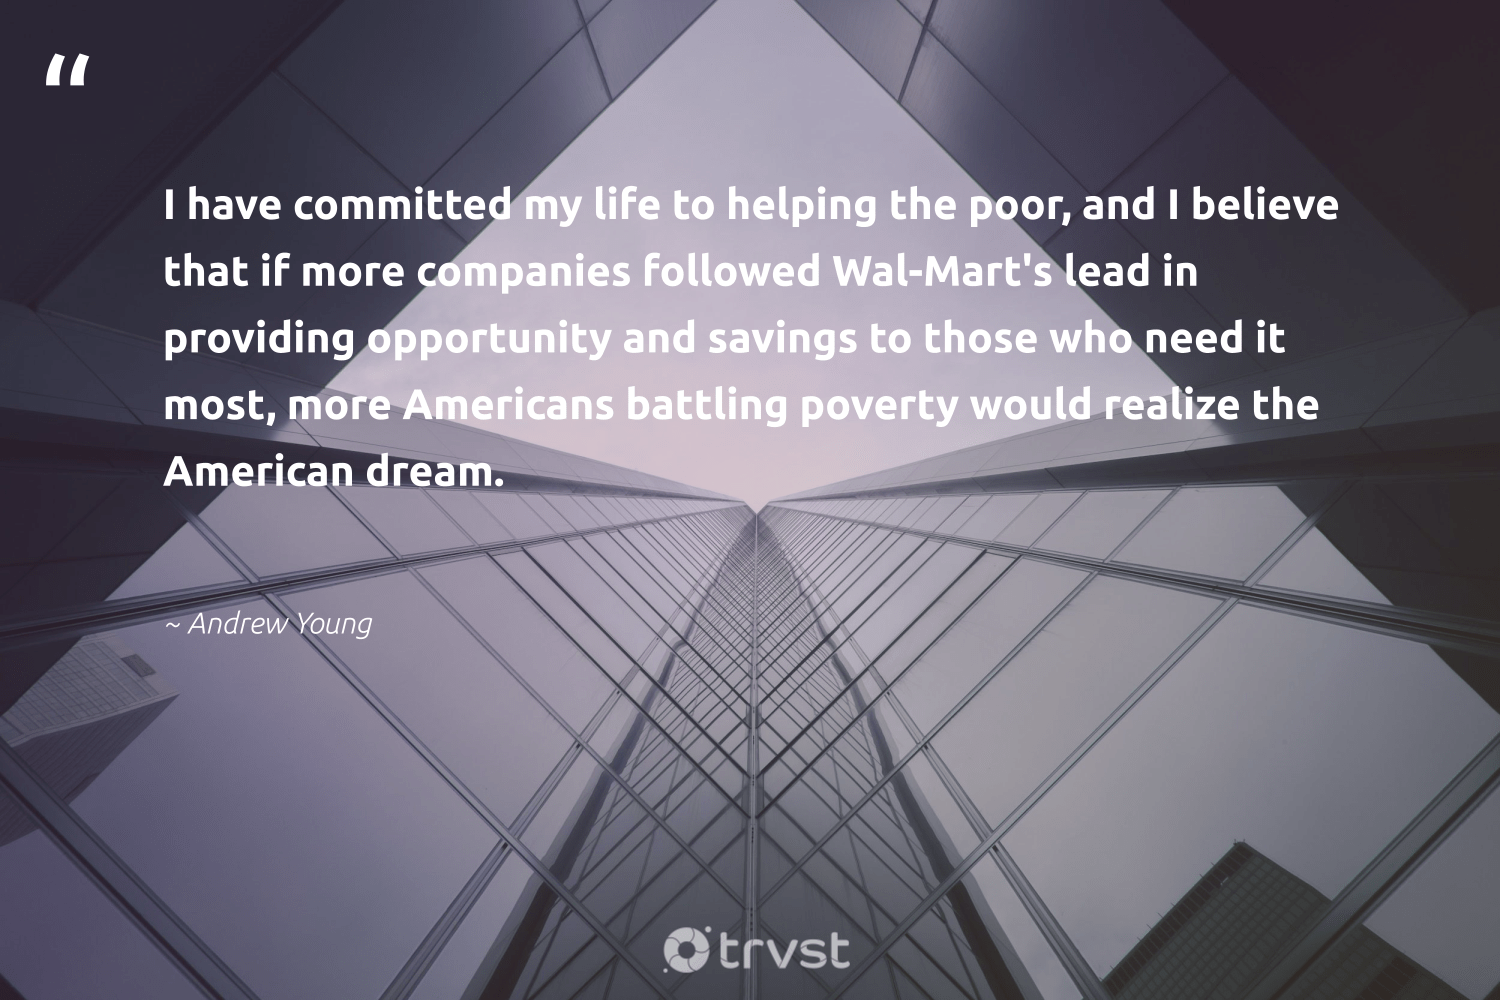 """""""I have committed my life to helping the poor, and I believe that if more companies followed Wal-Mart's lead in providing opportunity and savings to those who need it most, more Americans battling poverty would realize the American dream.""""  - Andrew Young #trvst #quotes #poor #poverty #endpoverty #sustainable #inclusion #dosomething #sharedresponsibility #sustainablefutures #bethechange #dogood"""